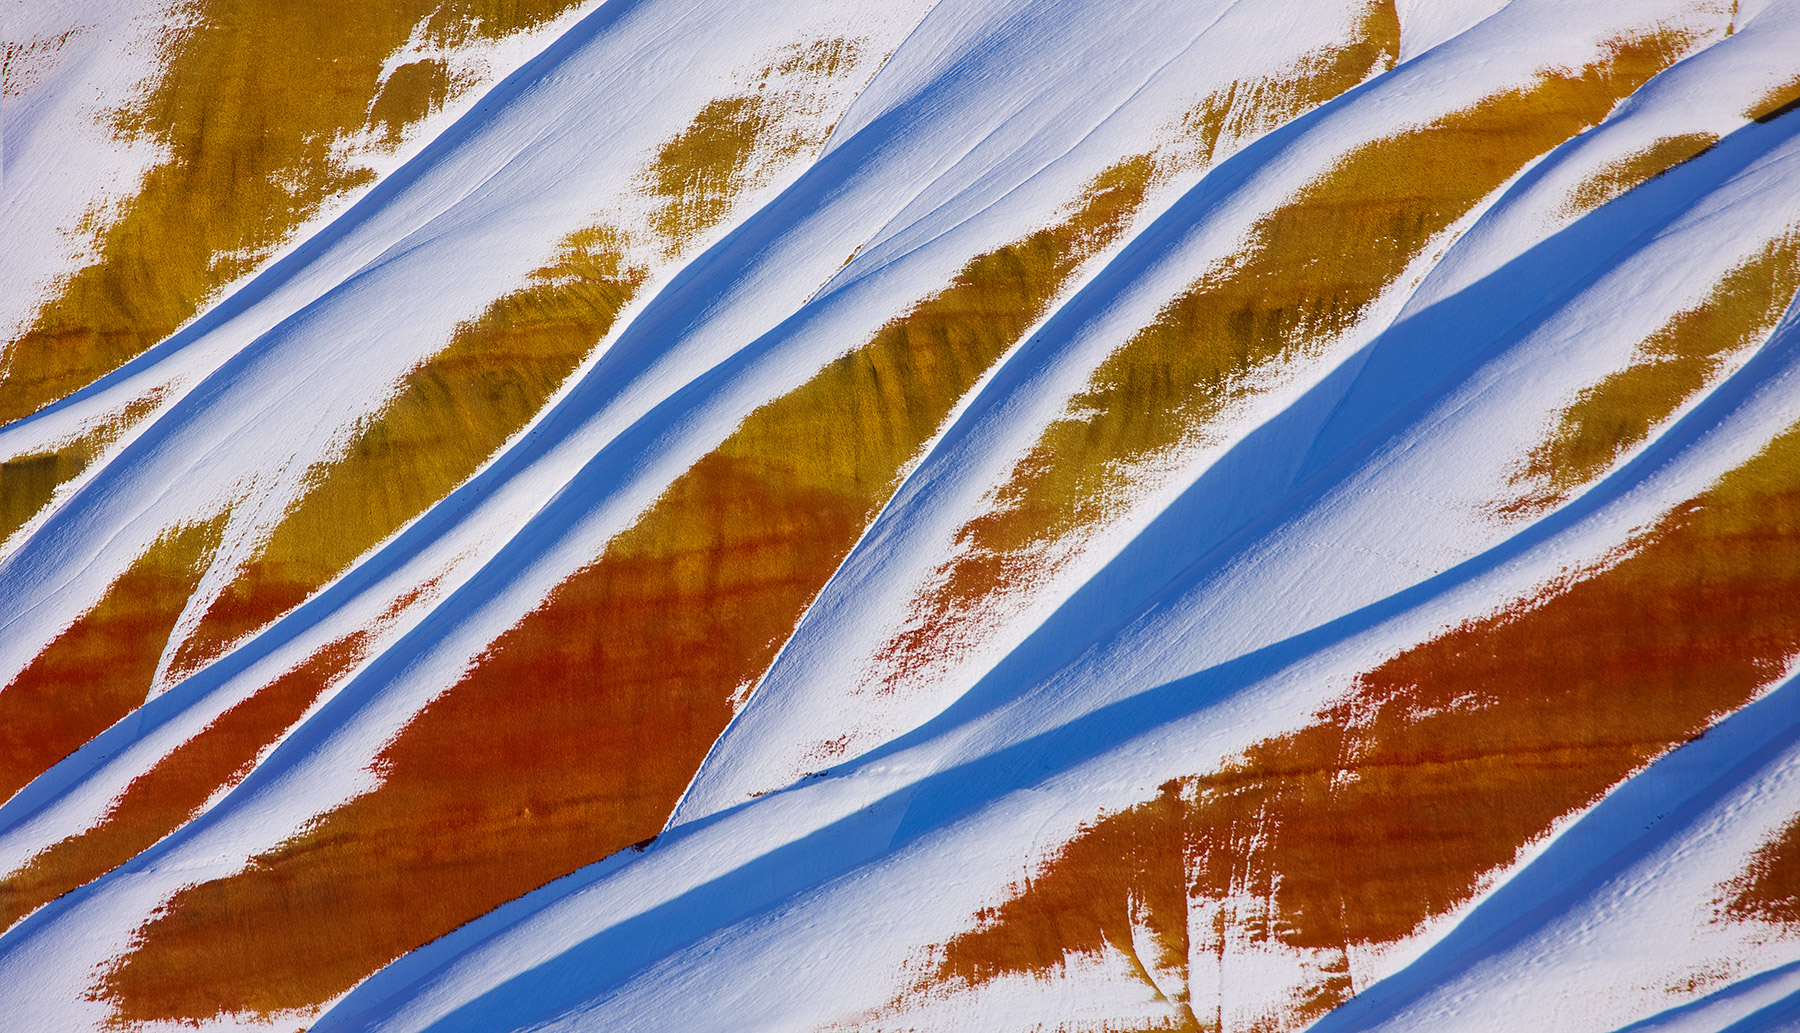 Oregon, Painted Hills, Colorful, Snow, photo